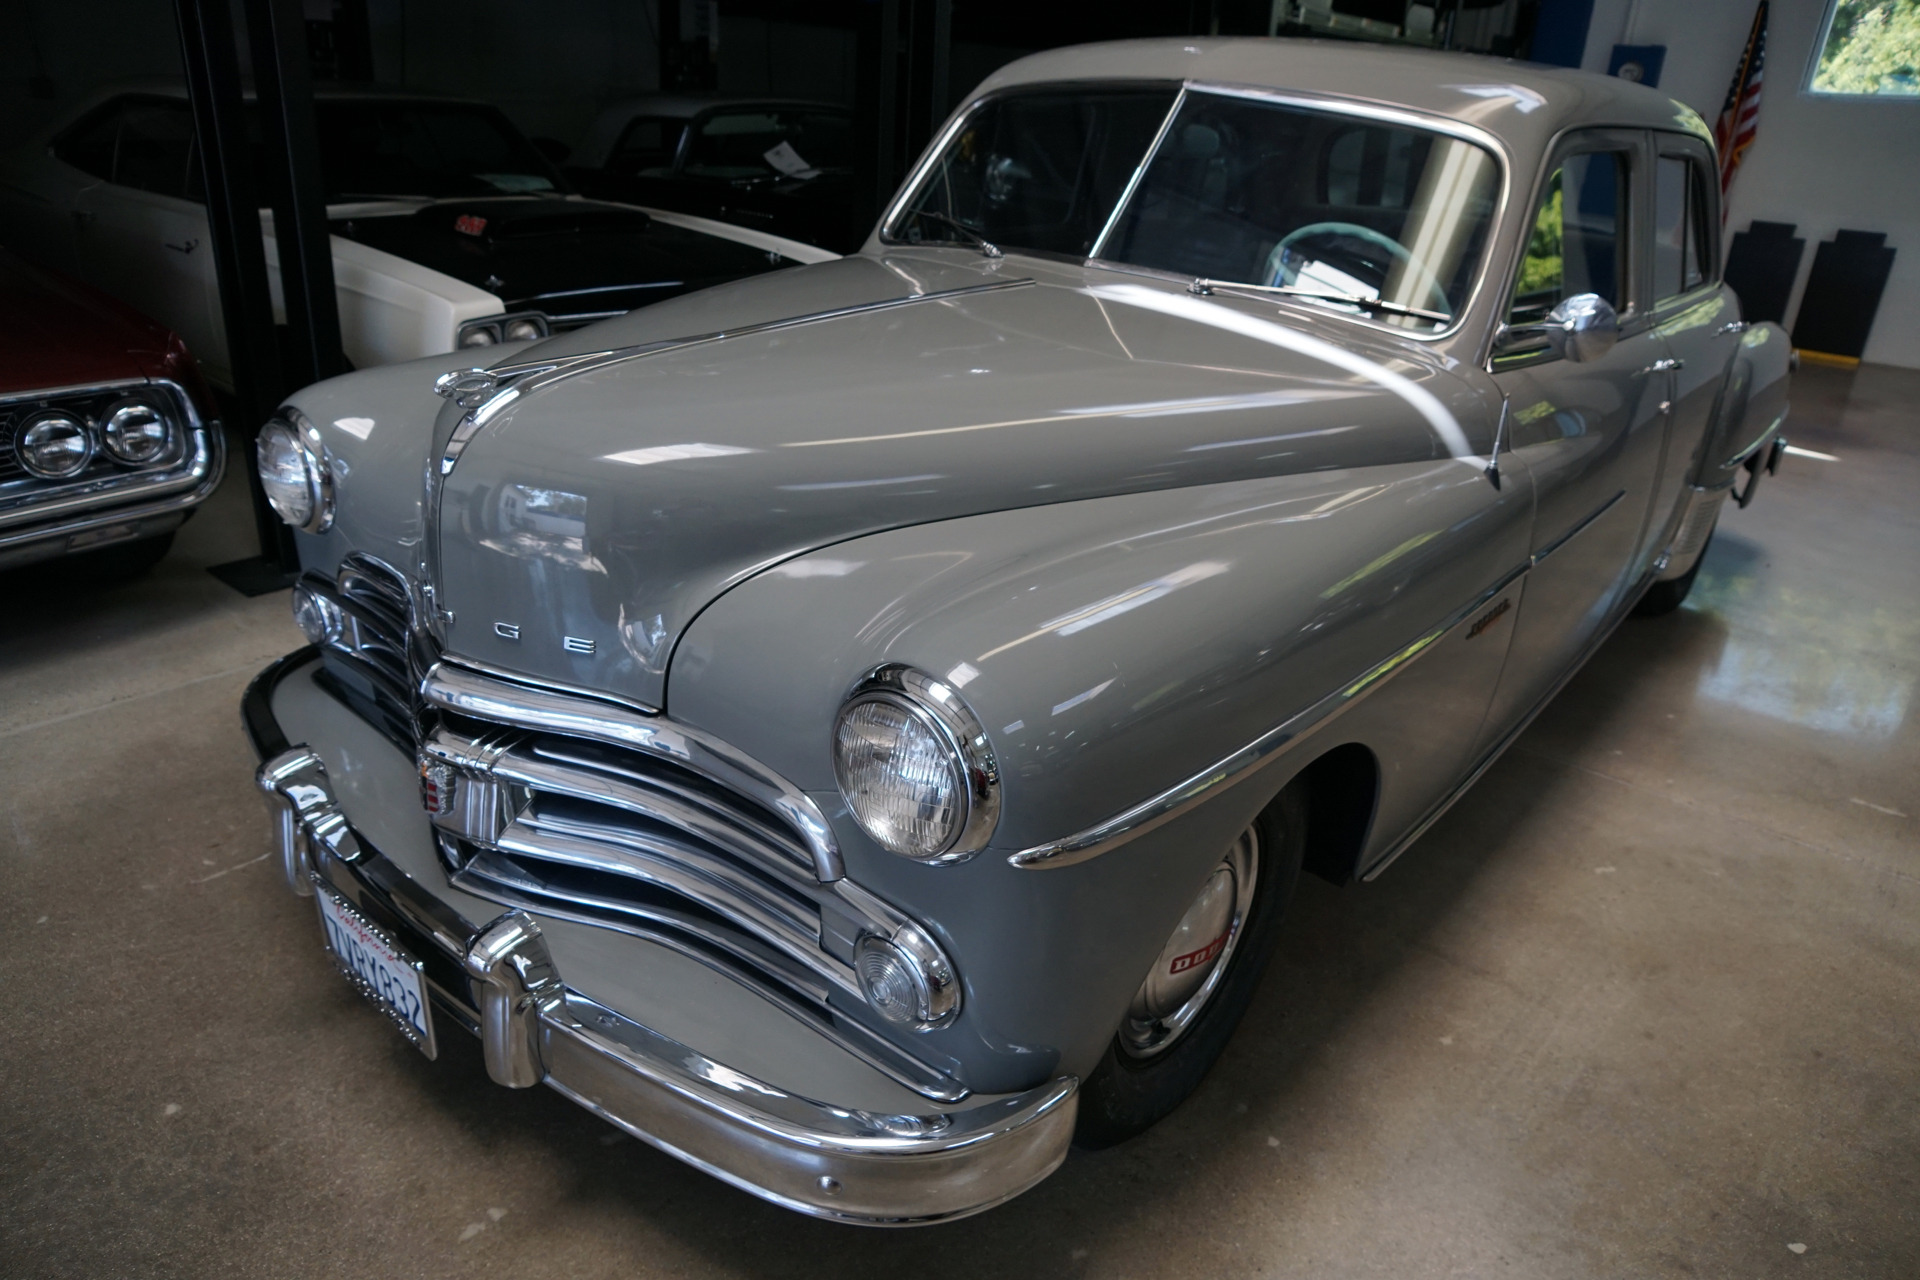 hight resolution of 1950 dodge d34 coronet town sedan stock 385 for sale near torranceused 1950 dodge d34 coronet